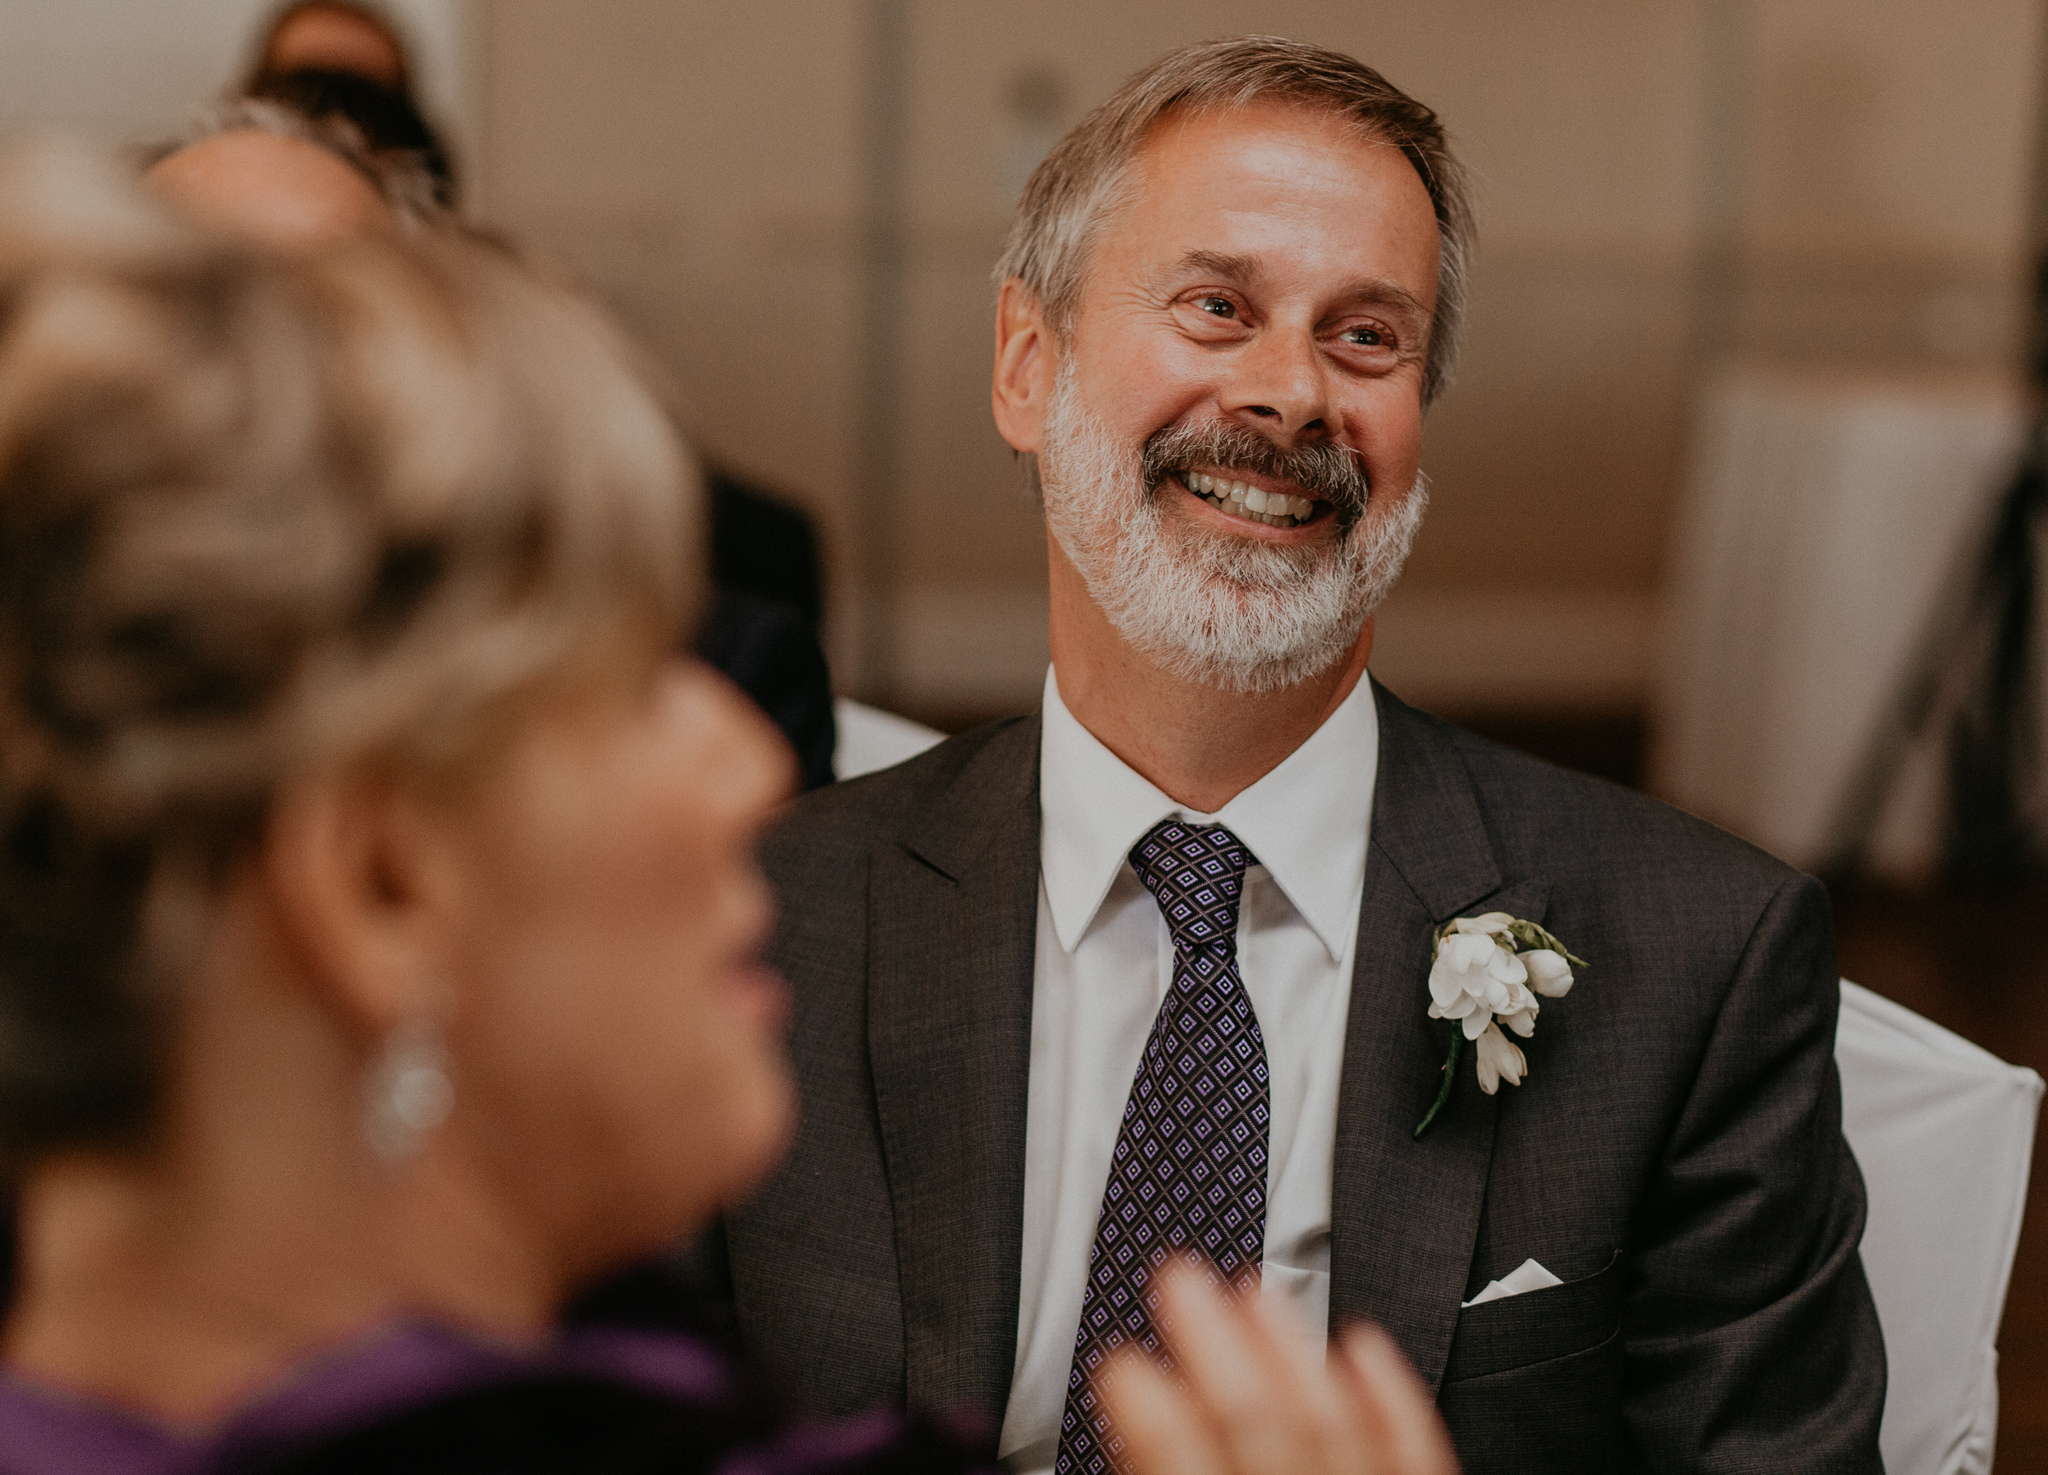 Father laughs during wedding reception for bride and groom in candid photo